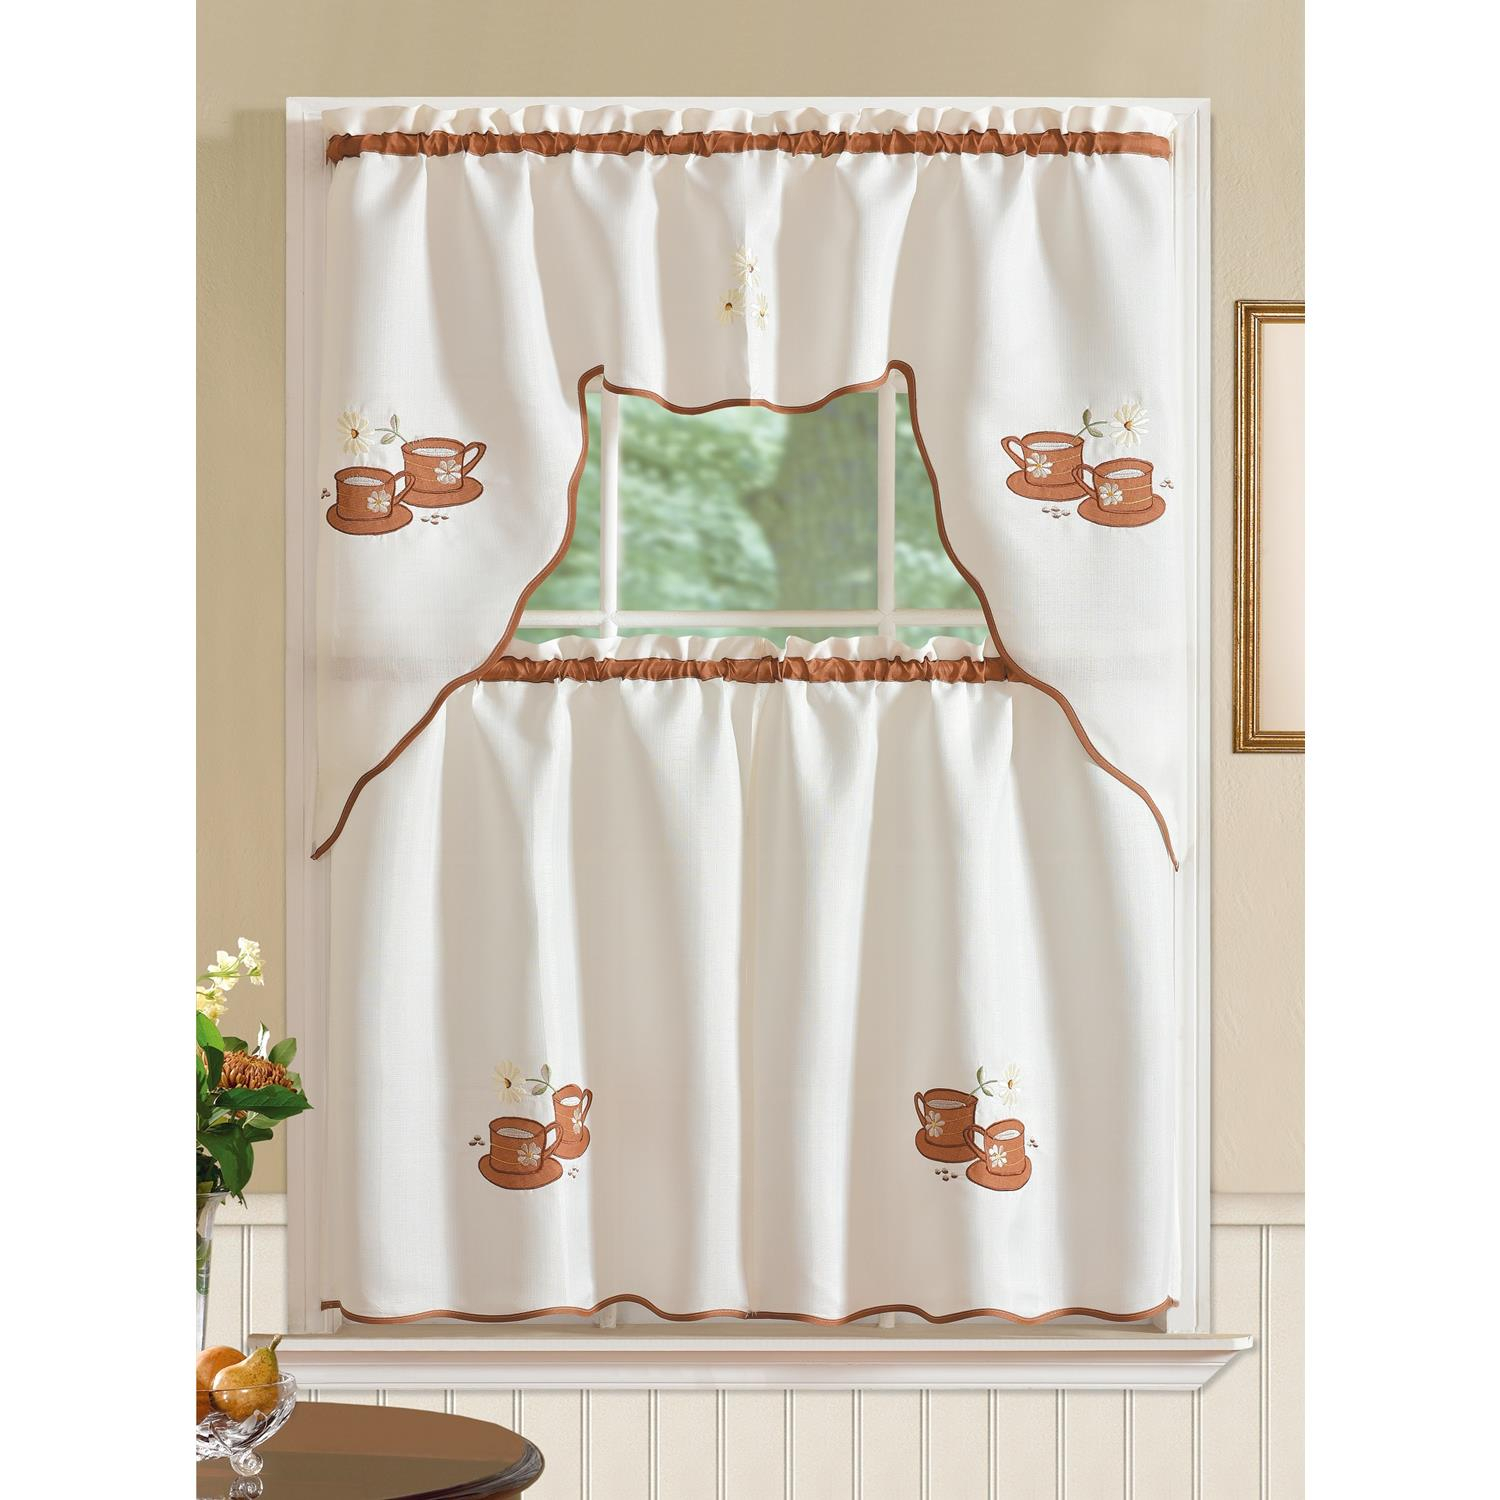 Details About Imperial Coffee Jacquard Kitchen Curtain Set In Spring Daisy Tiered Curtain 3 Piece Sets (View 6 of 20)